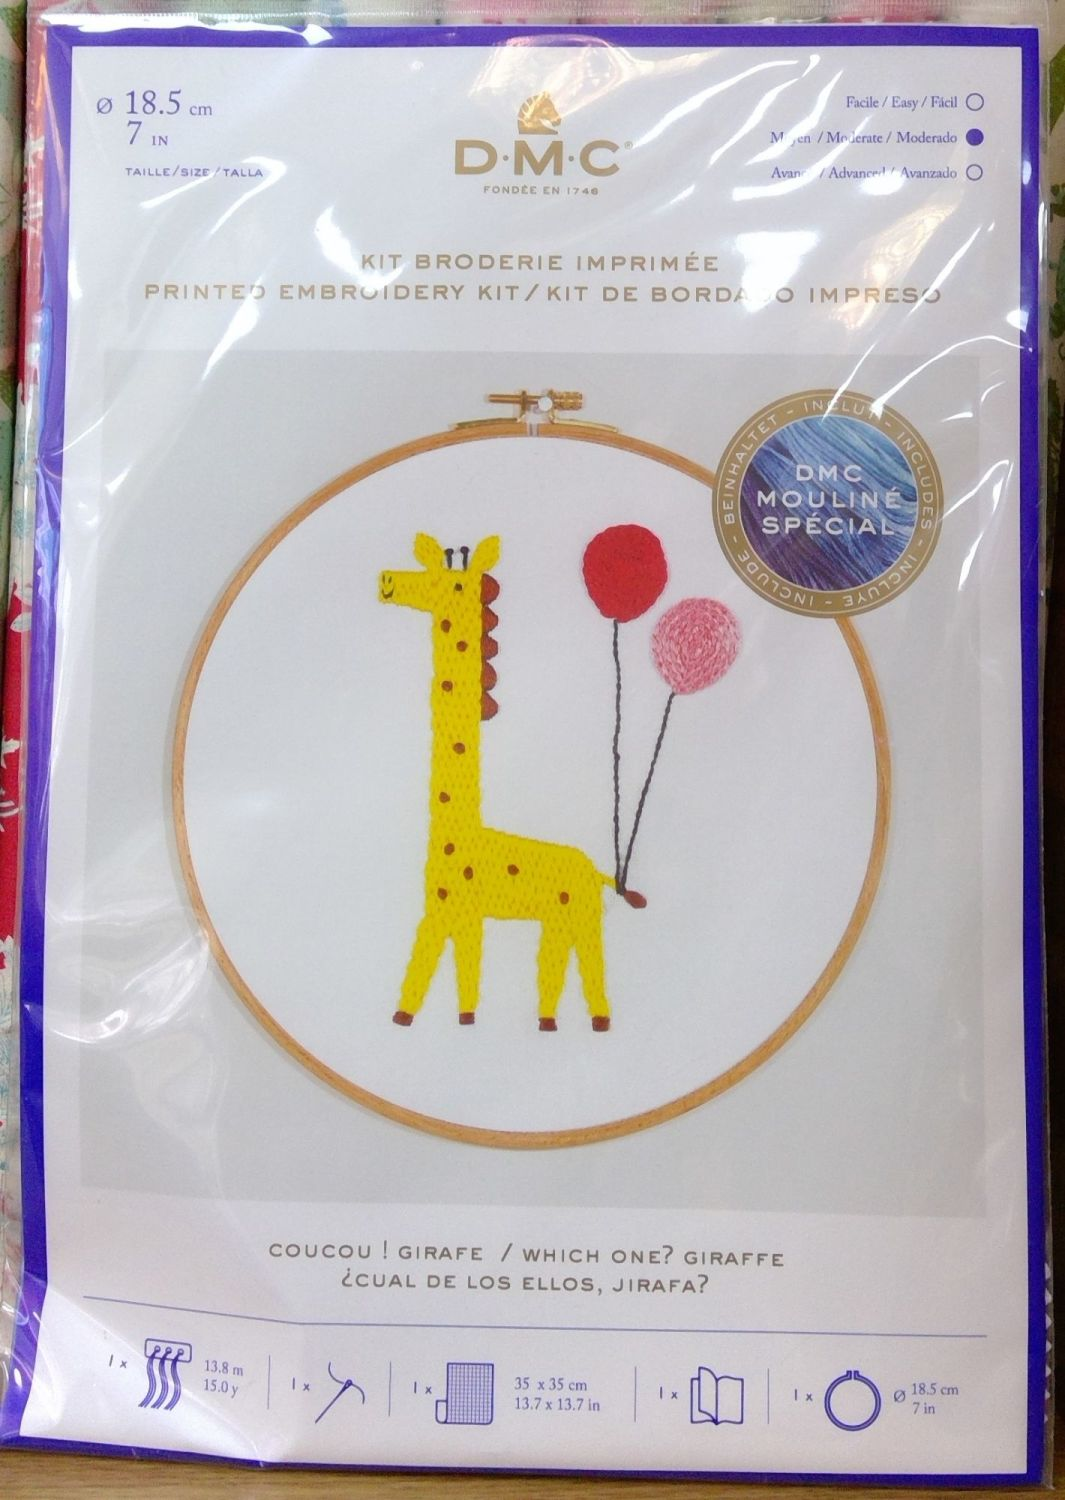 DMC CELEBRATIONS- 'WHICH ONE? GIRAFFE' PRINTED EMBROIDERY KIT